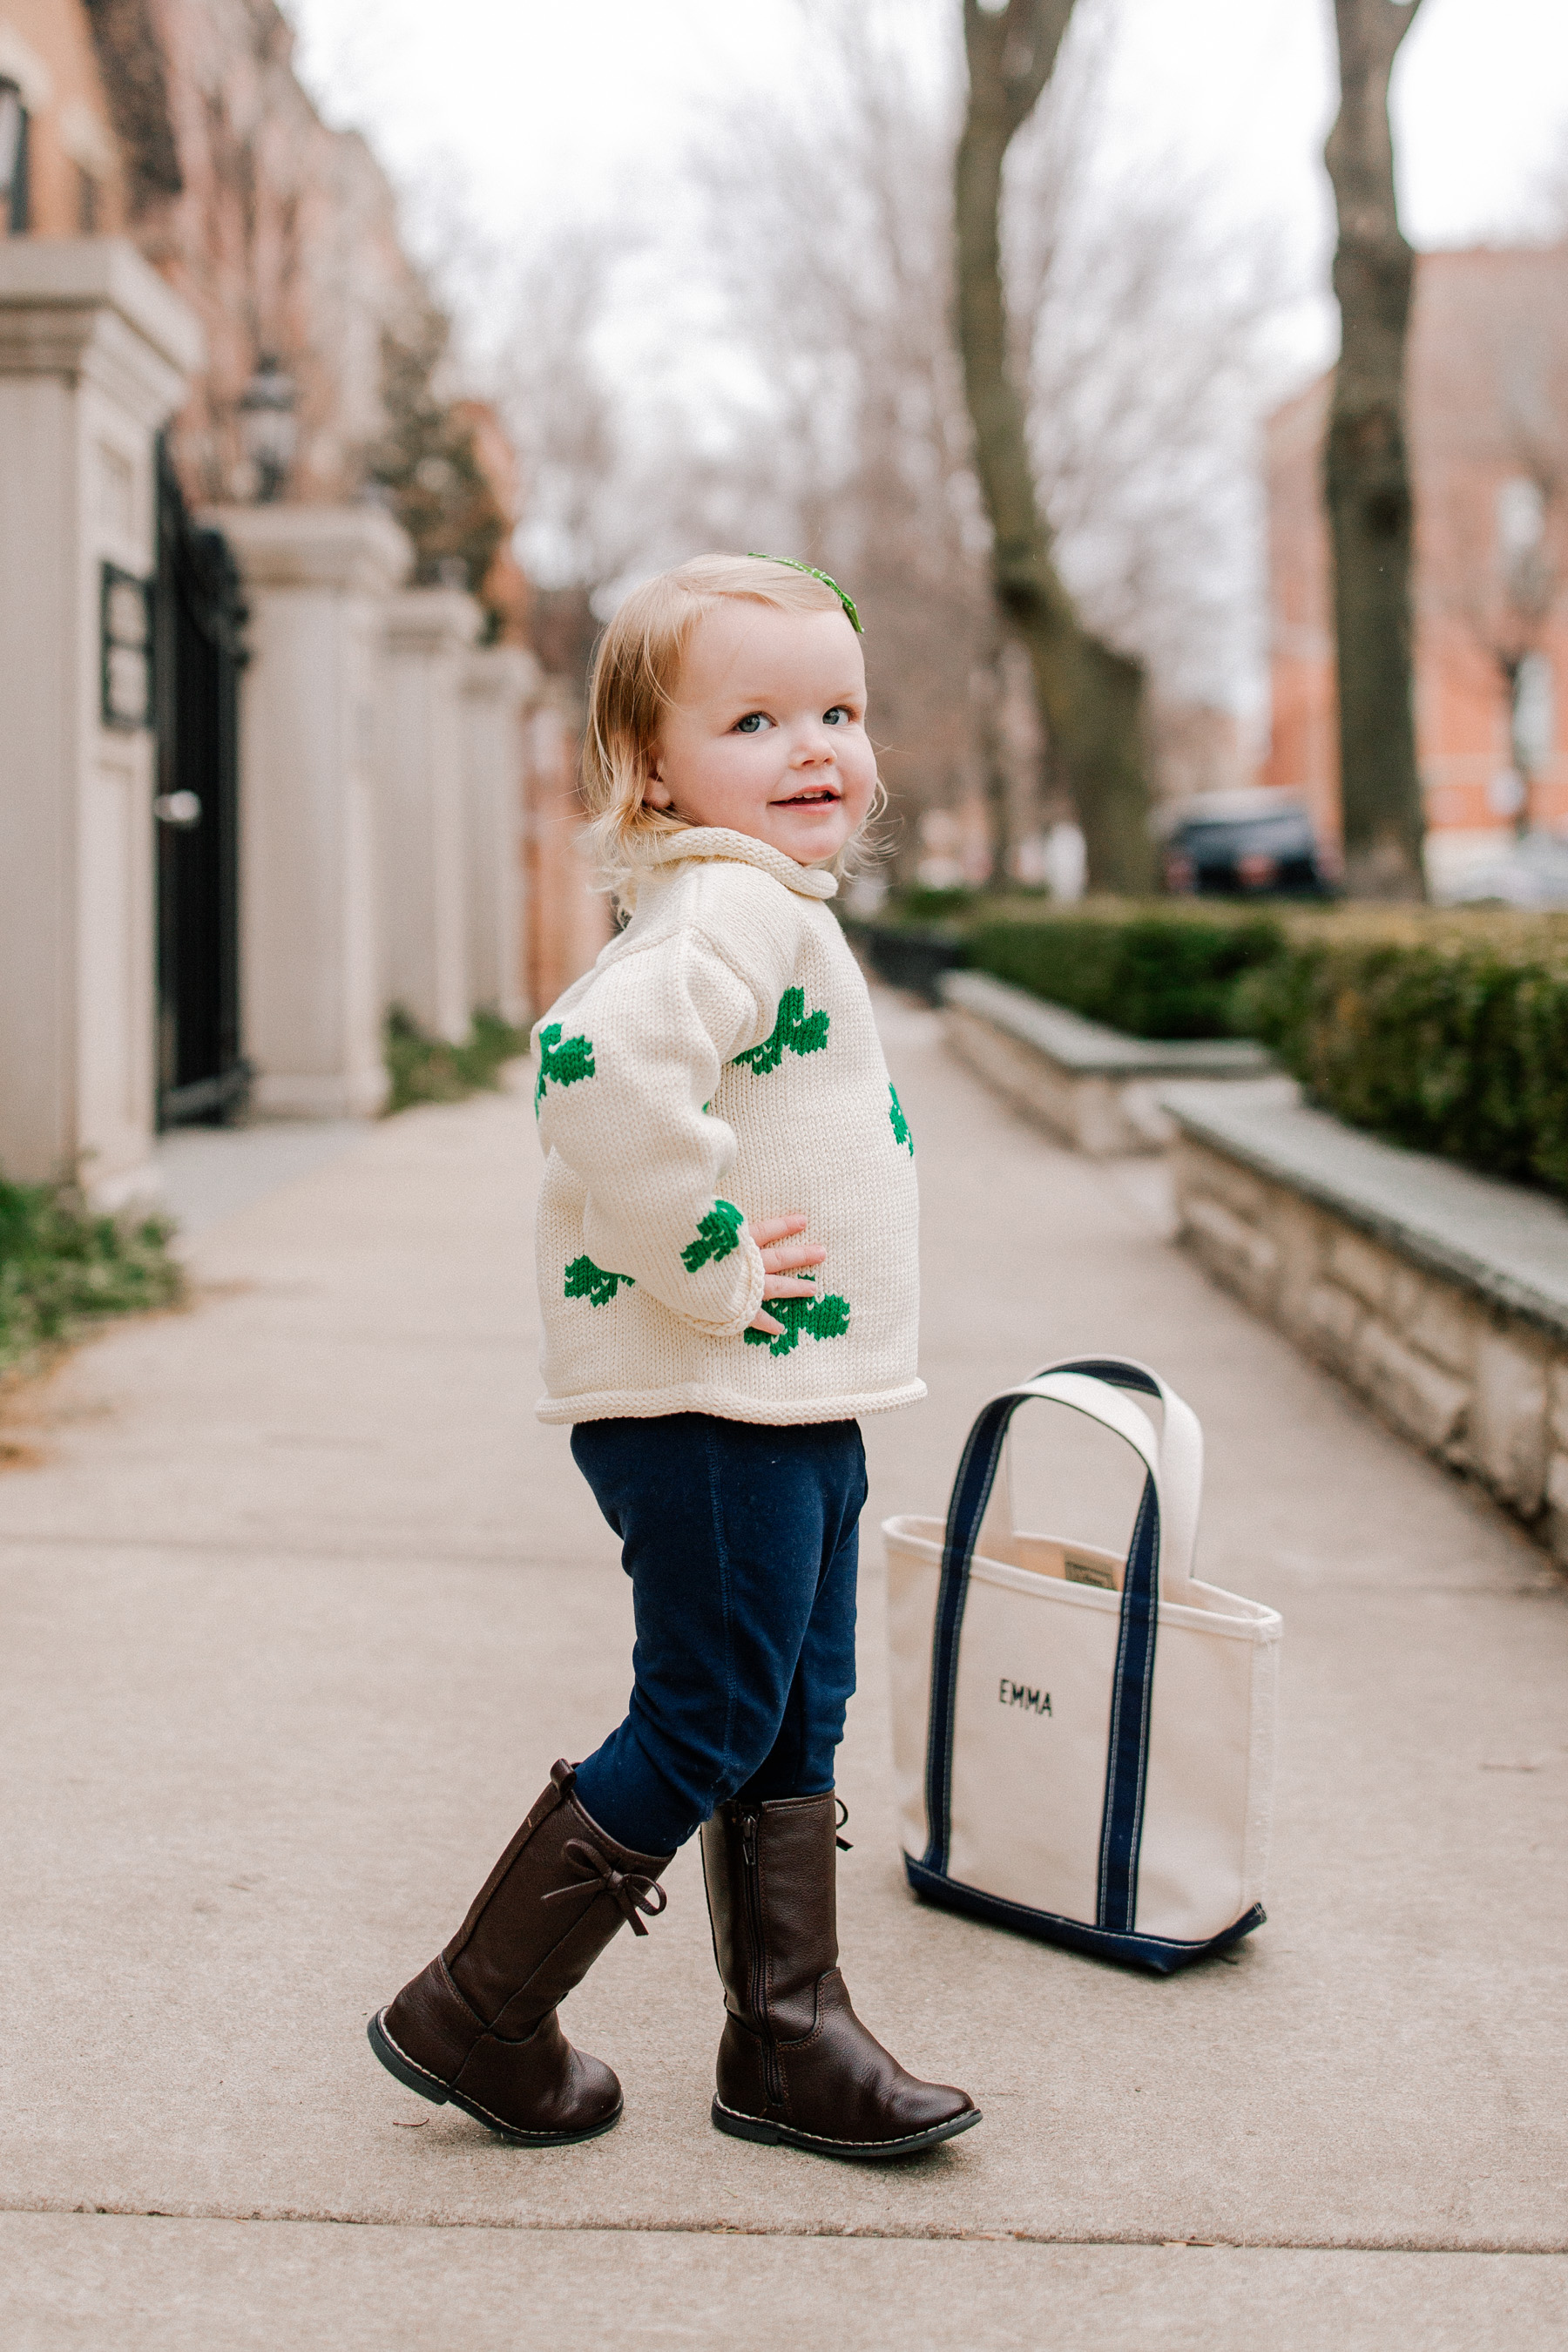 Emma's Outfit: Claver Shamrock Sweater / L.L. Bean Tote c/o / Gap Kids Jeggings and Boots